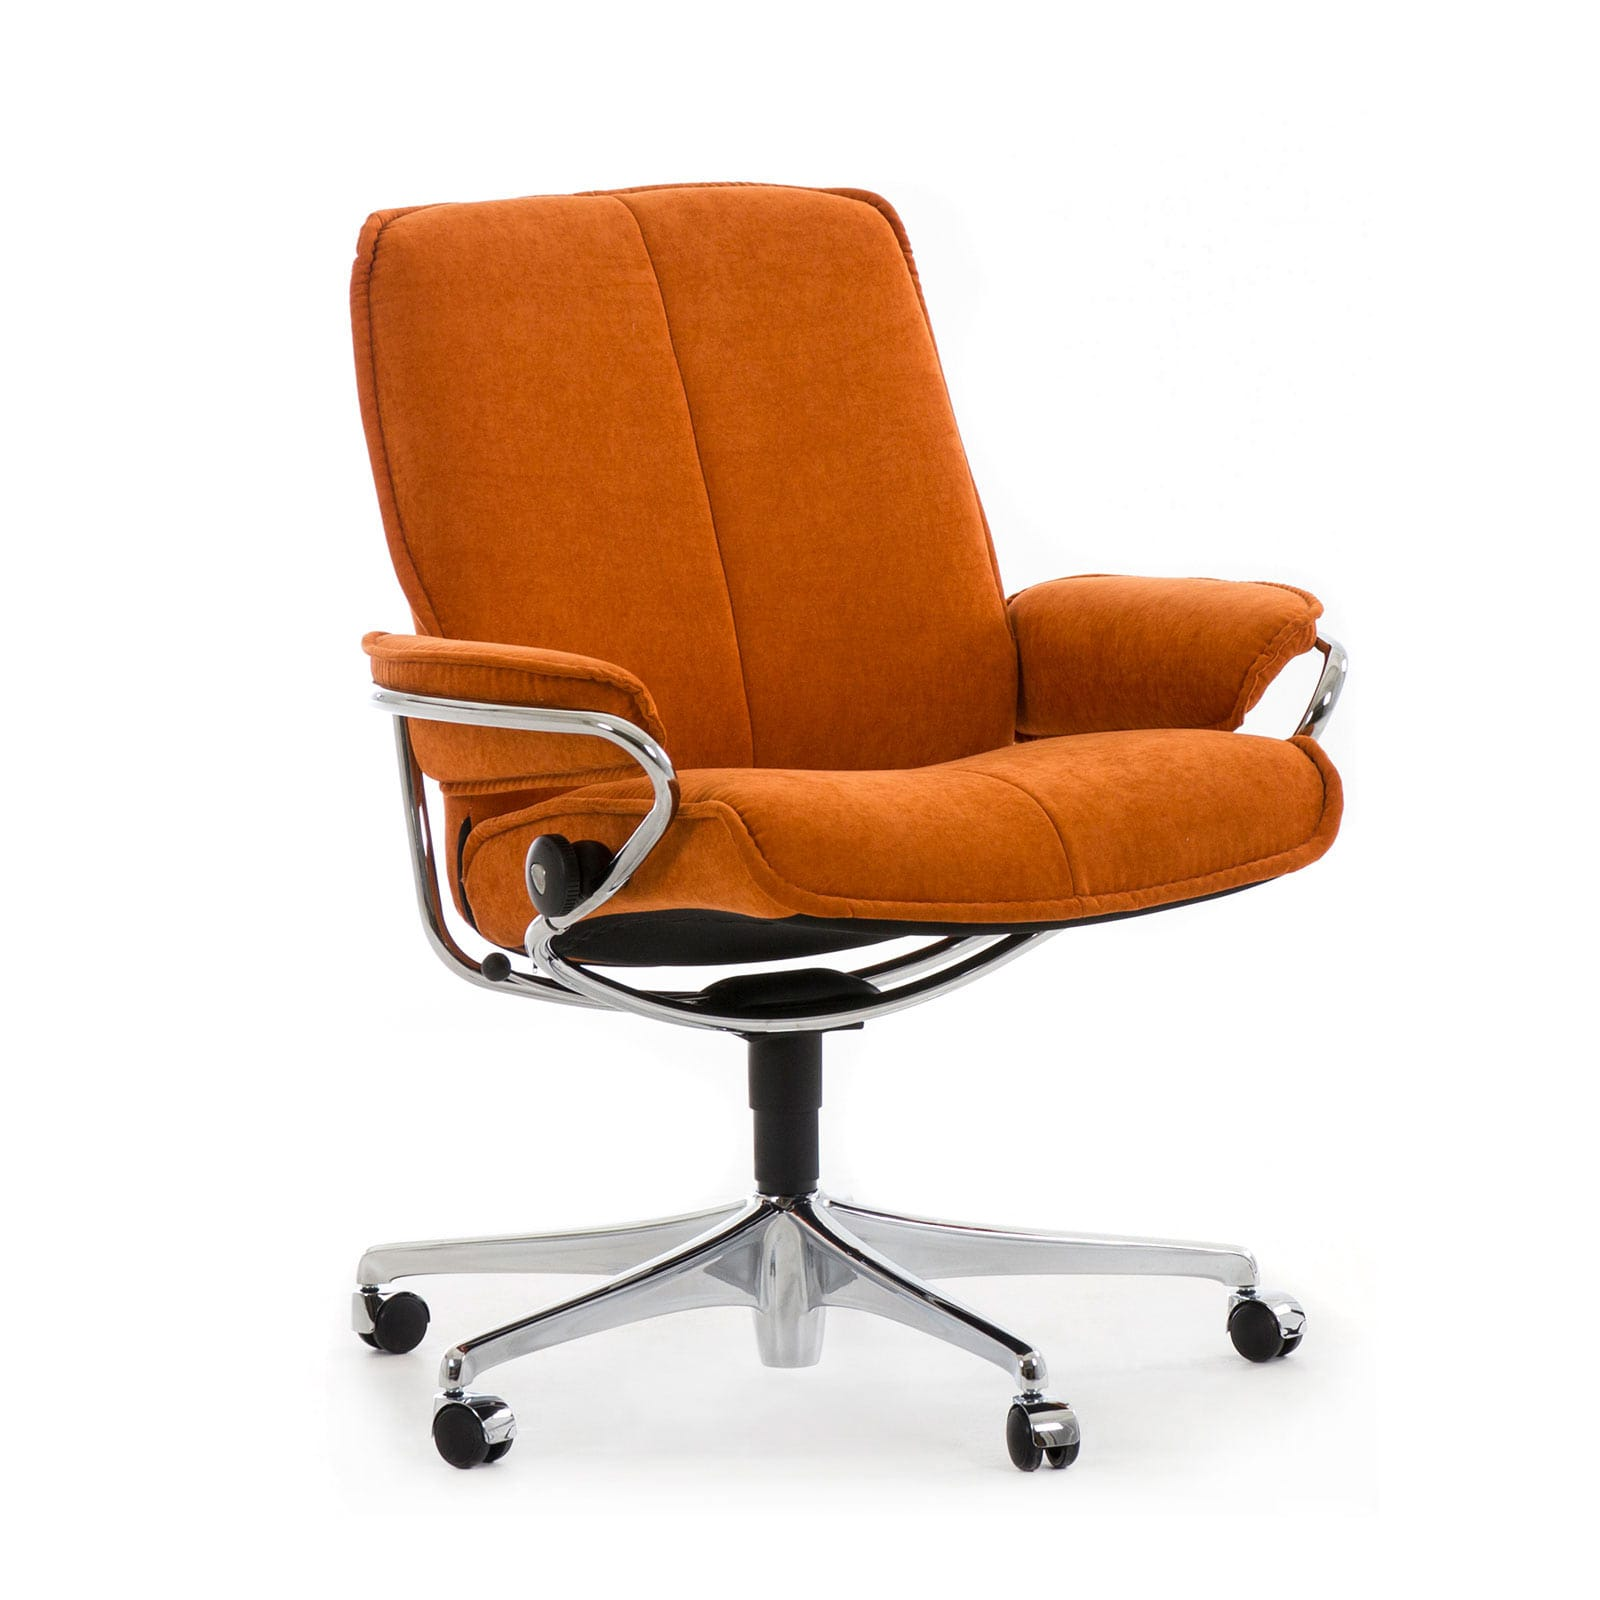 Bürostuhl Im Test 2016 City Home Office Von Stressless Stressless Online Shop